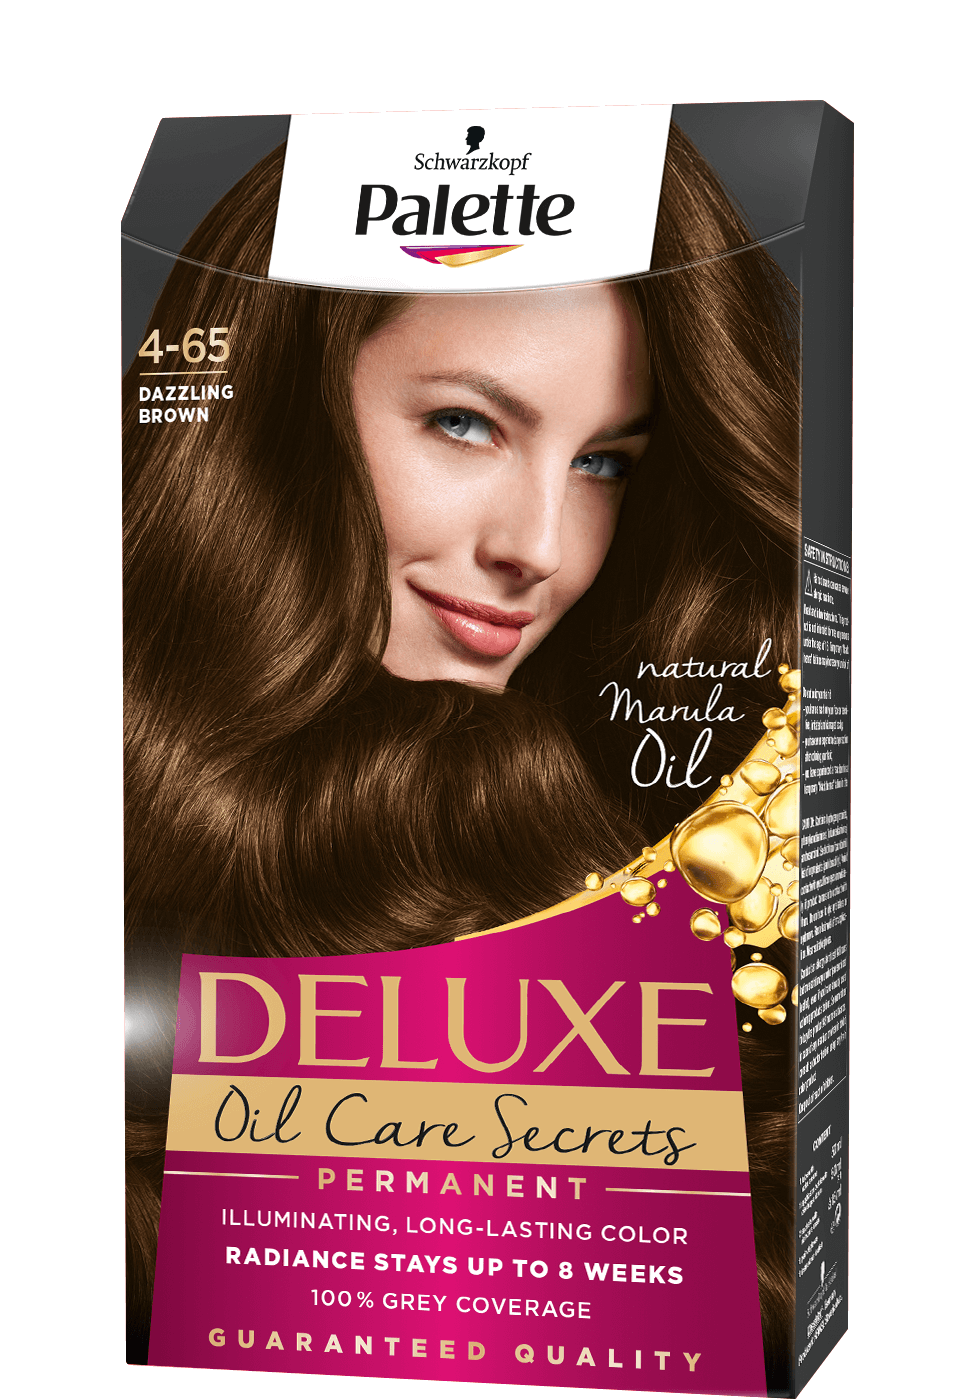 palette_com_oil_care_secrets_4_65_dazzling_brown_970x1400